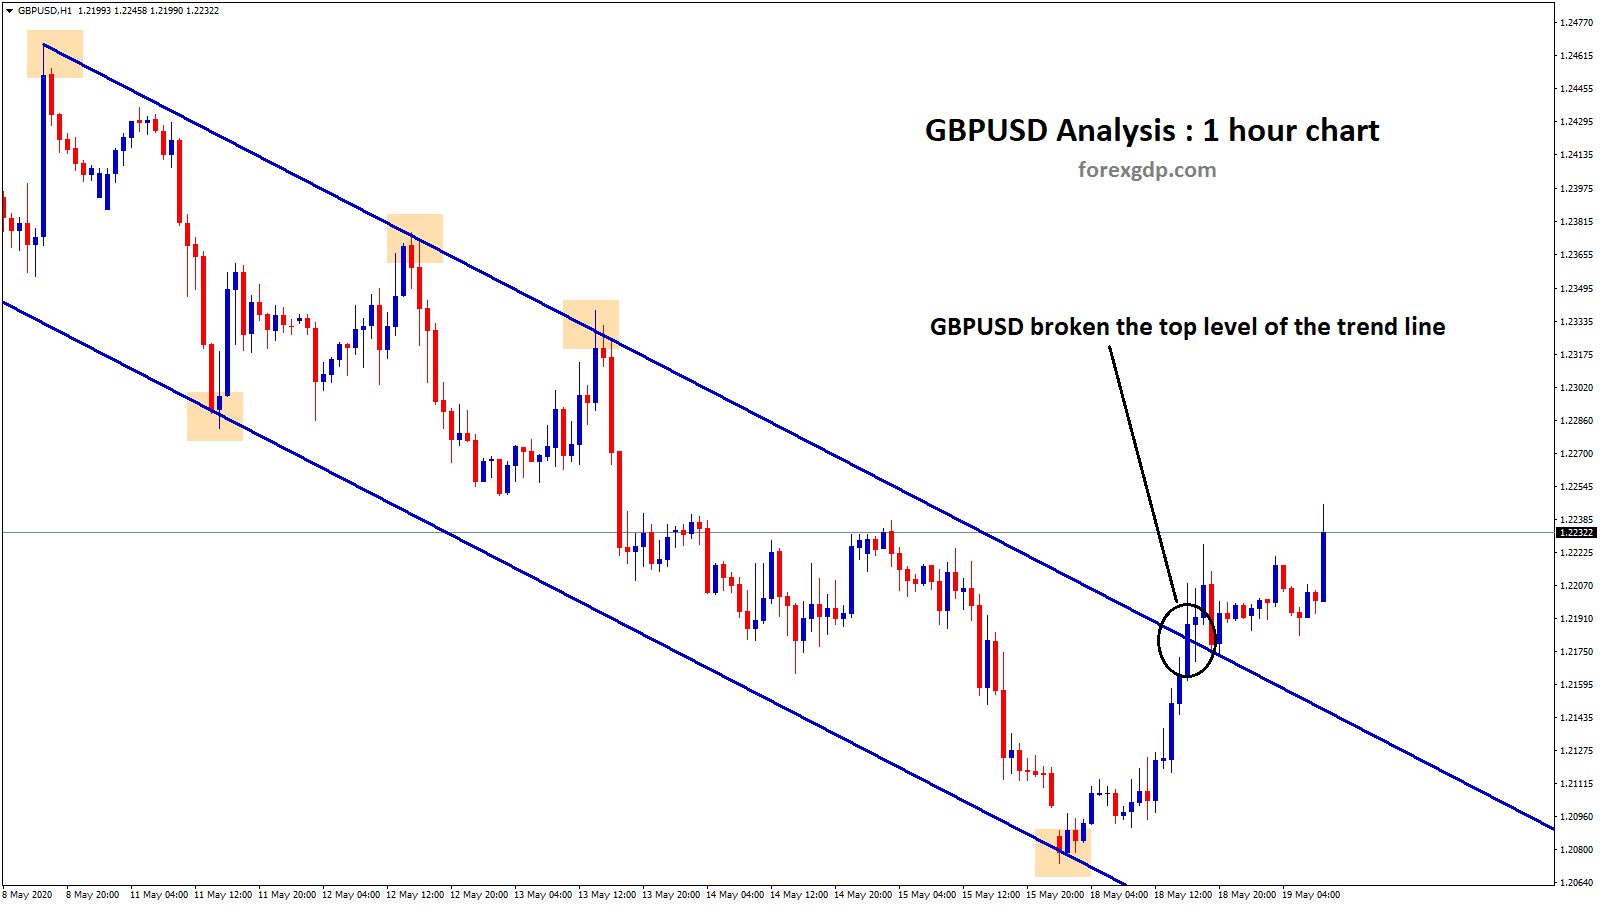 gbpusd broken the top level of downtrend line in h1